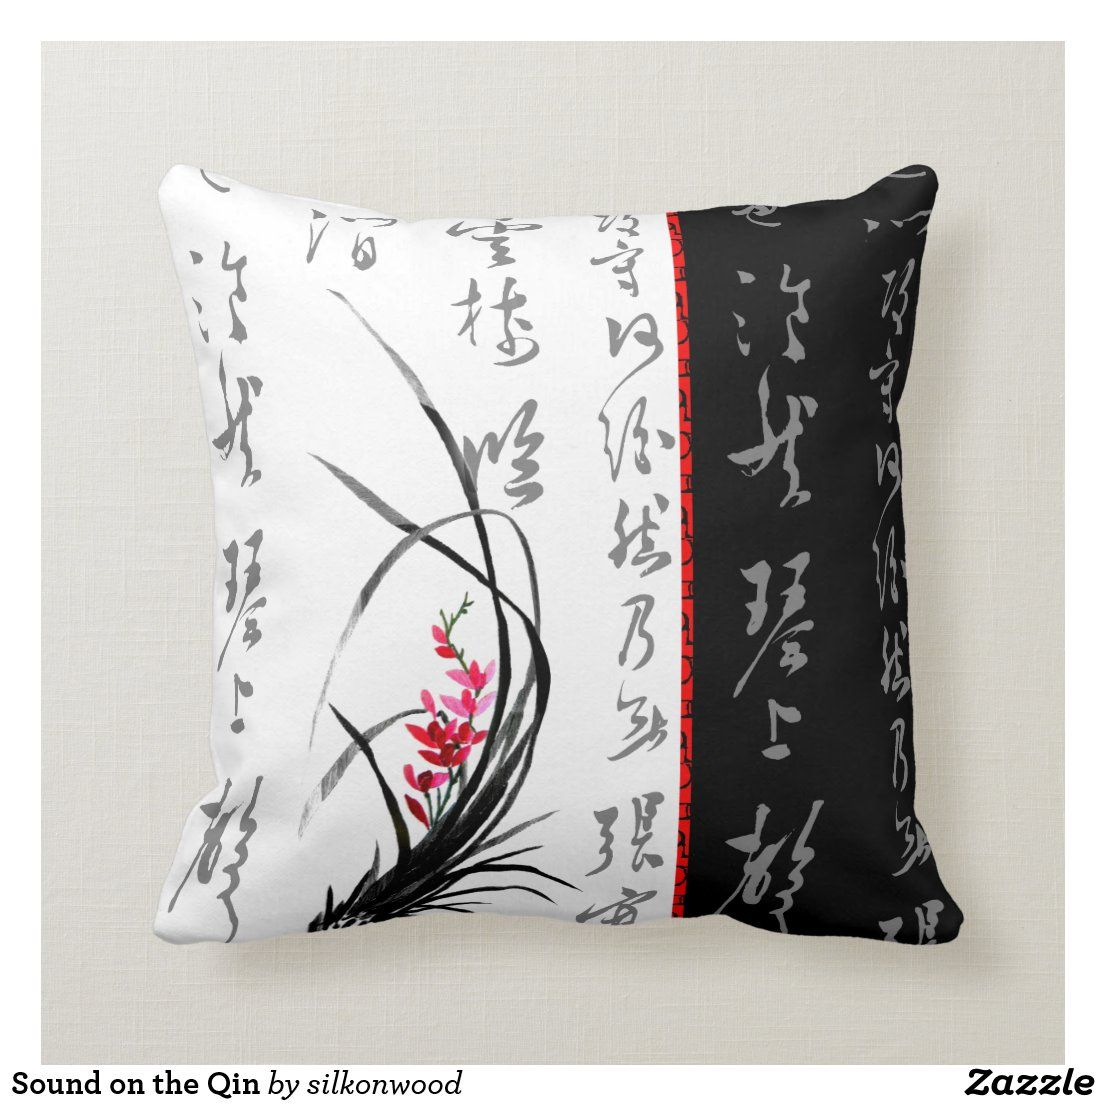 Sound On The Qin Throw Pillow Zazzle Com In 2021 Throw Pillows Pillows Custom Pillows